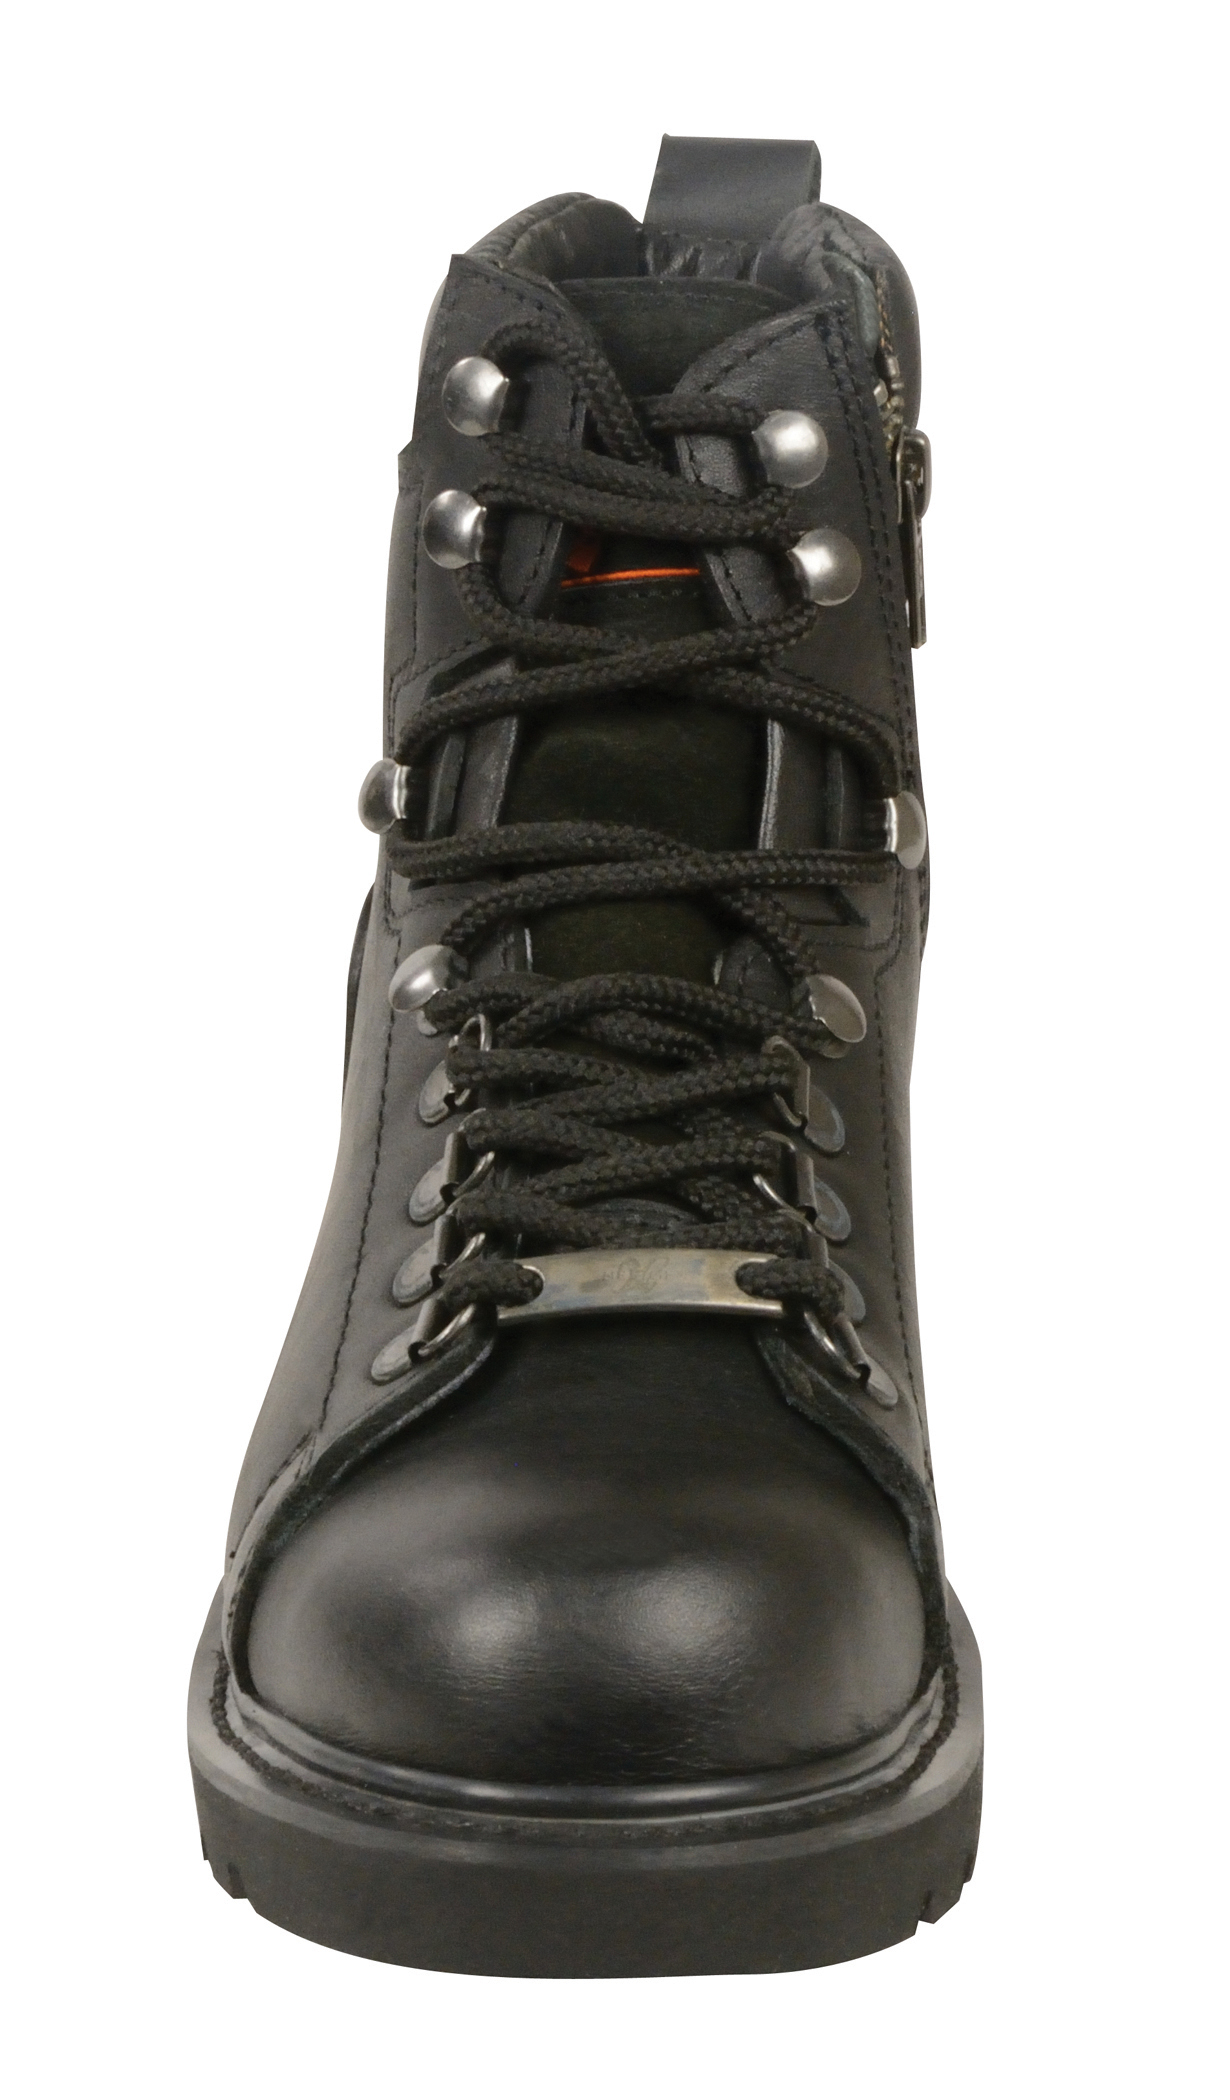 Full Face Cruiser Helmets >> Women's Biker Boots Real Leather Lace to Toe